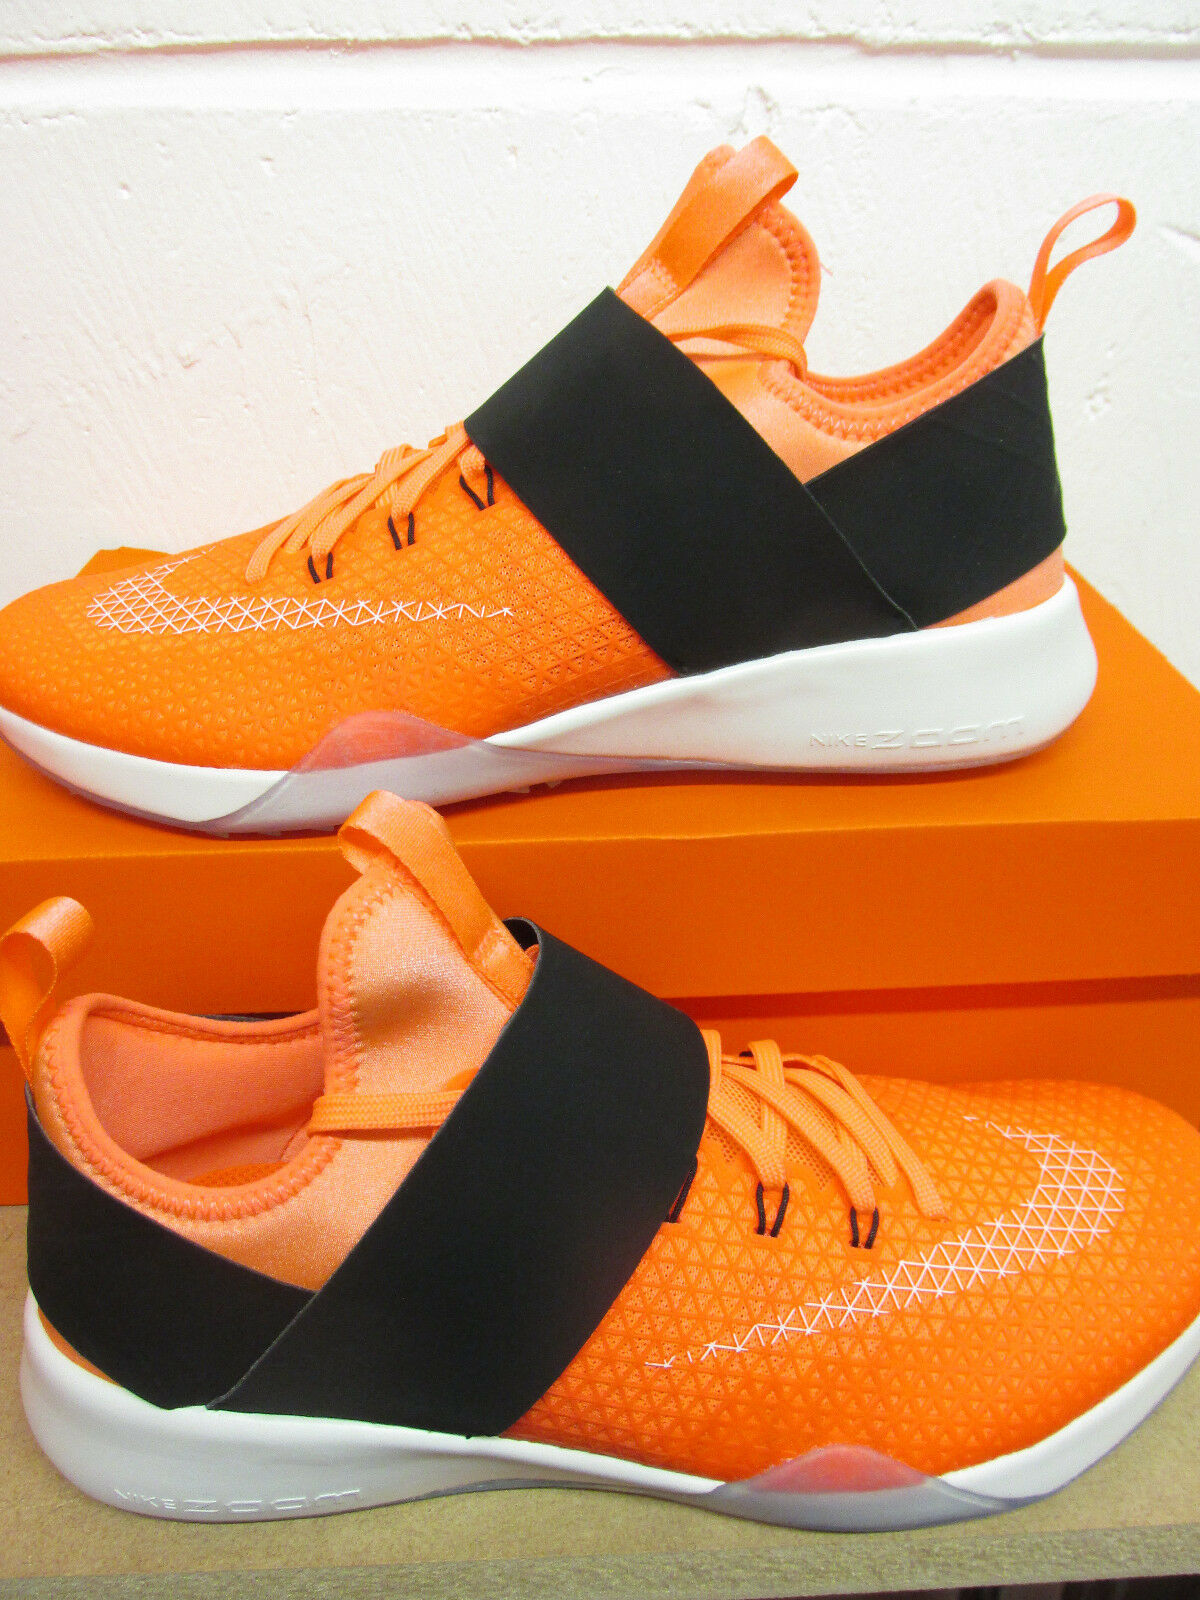 la course nike air zoom fort formateurs 843975 800 800 800 chaussures chaussures 7dc920